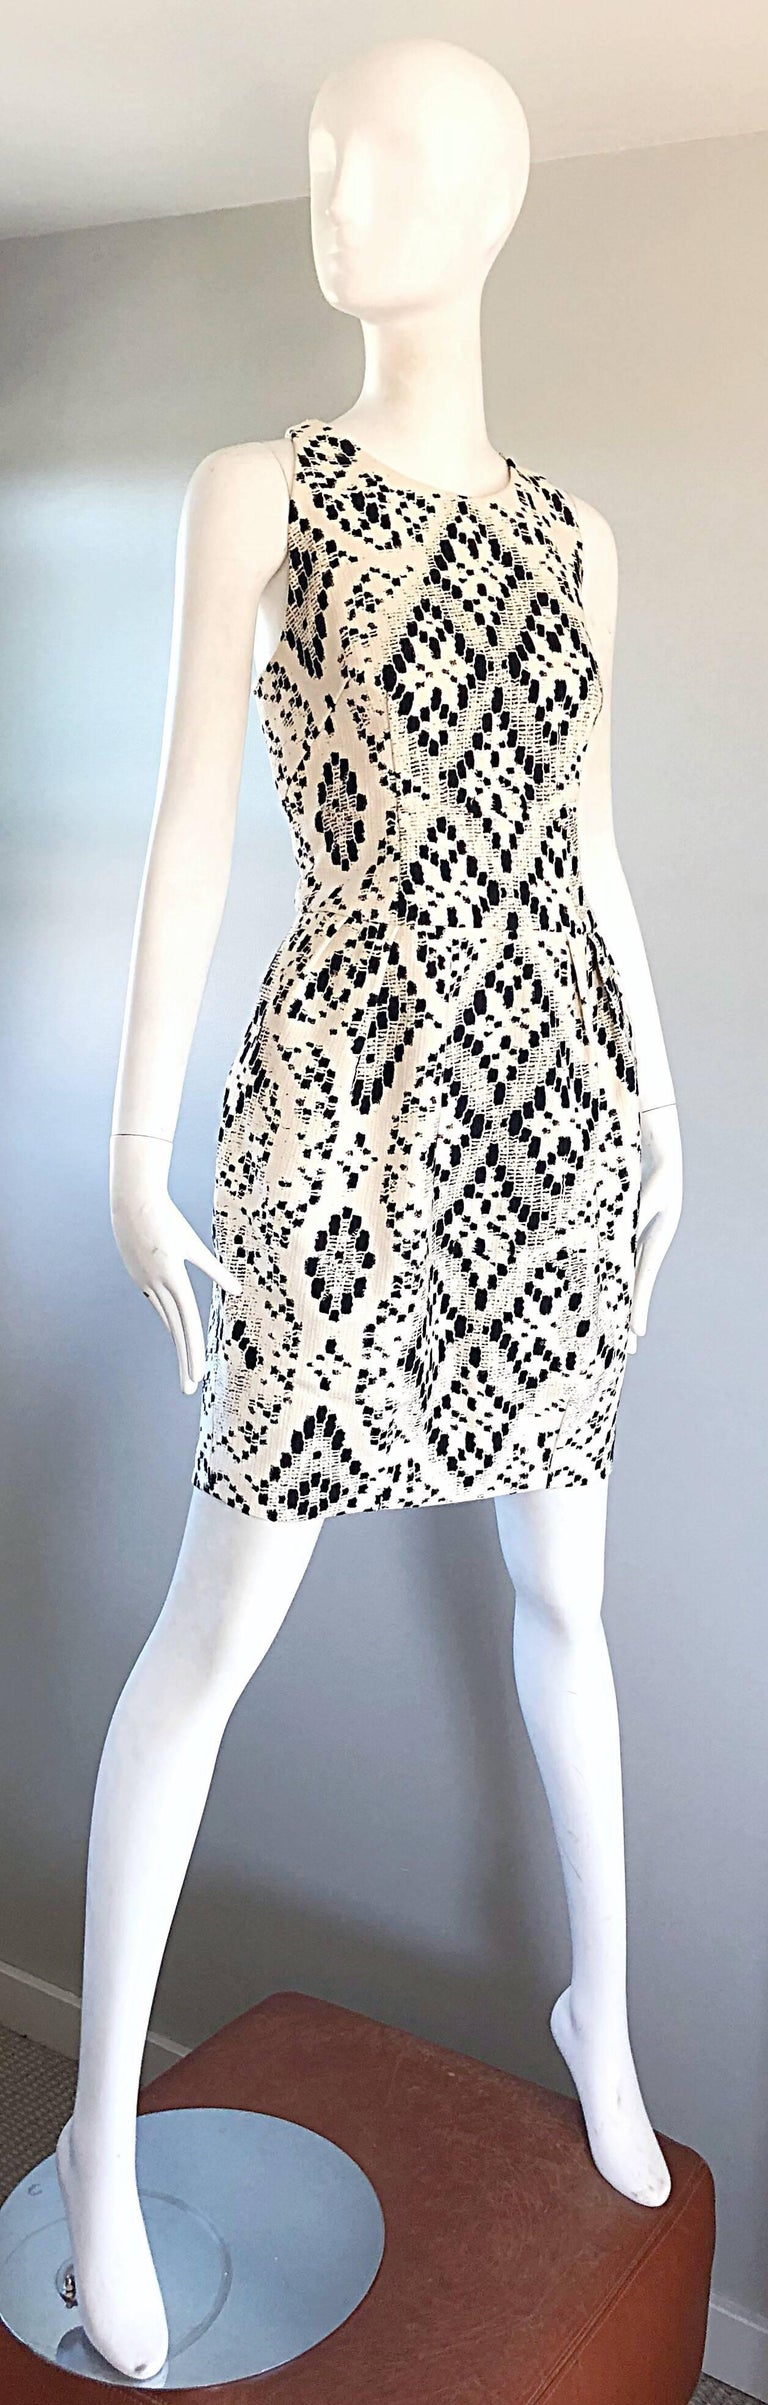 Giambattista Valli Size 10 / 12 Black and White Abstract Sleeveless Dress In Excellent Condition For Sale In Chicago, IL